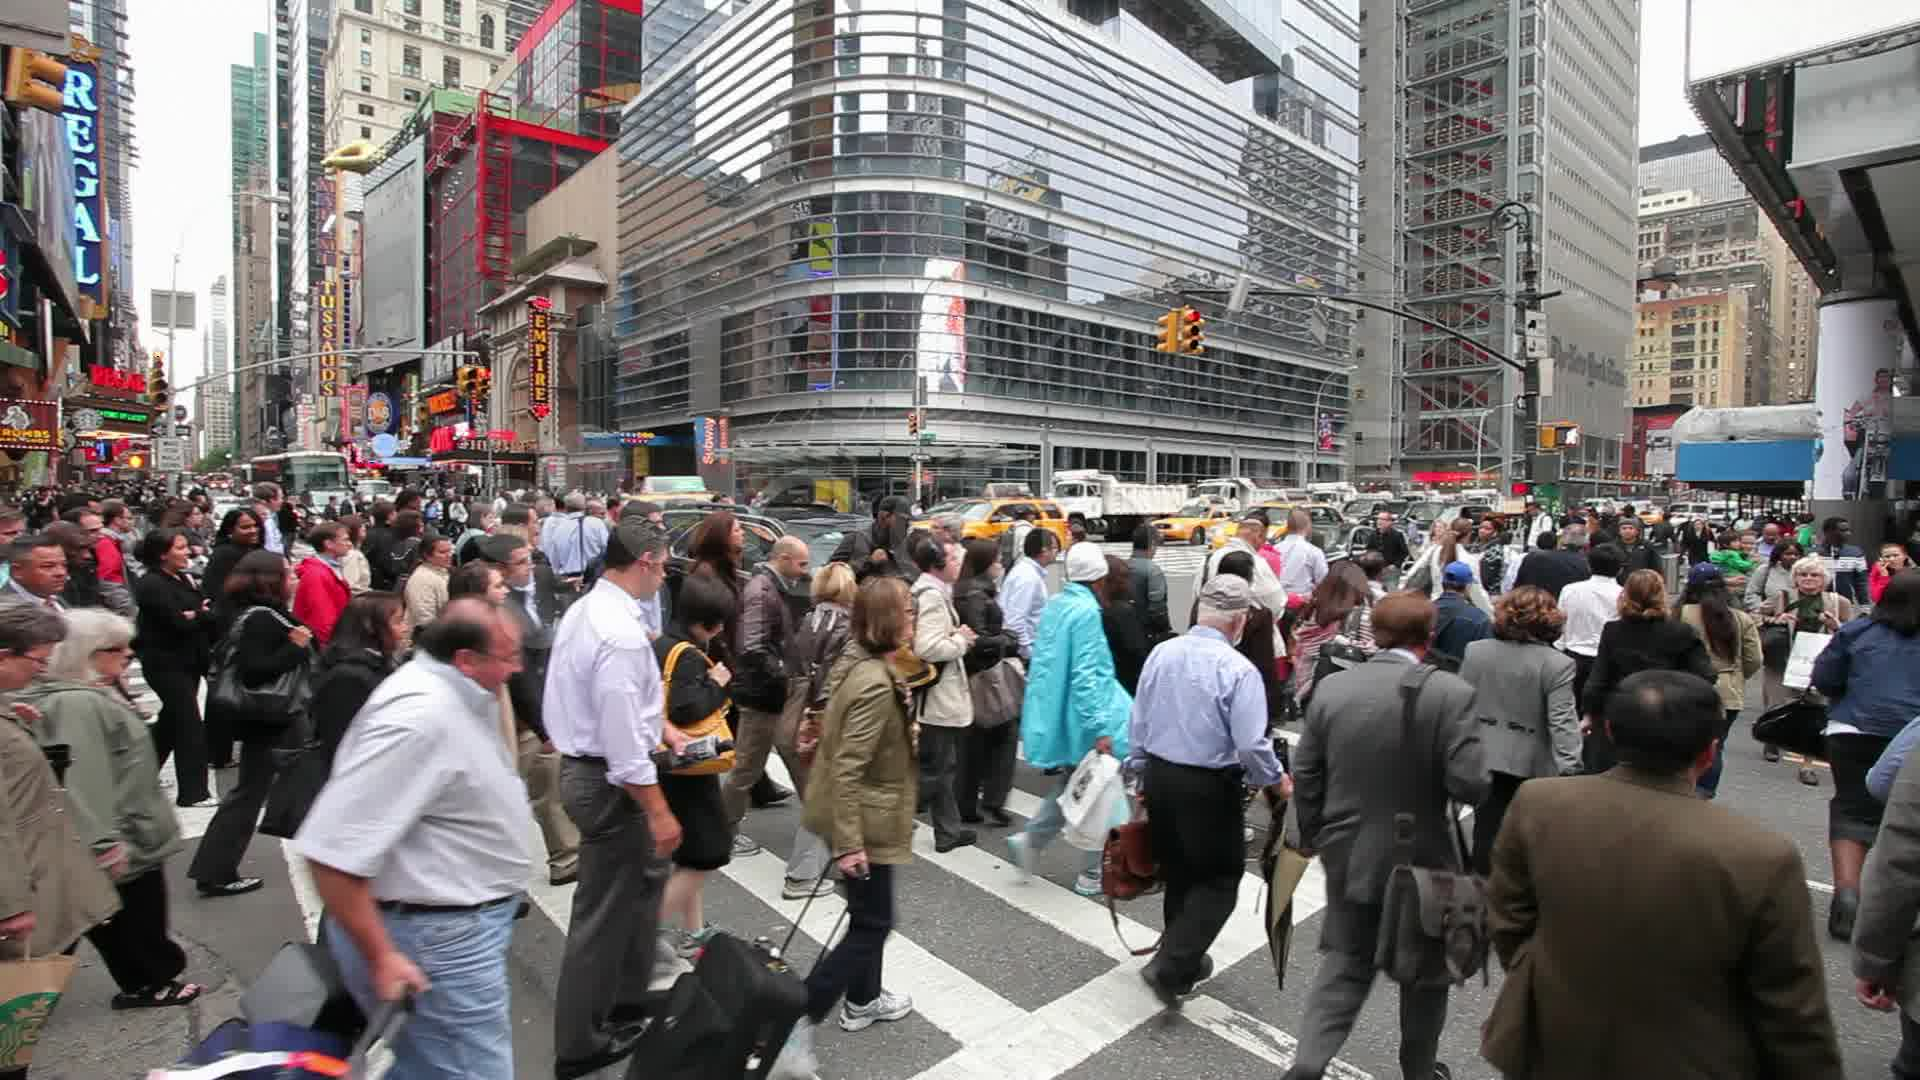 Crowd of People Walking on Busy City Street at Rush Hour ...  |Person Walking City